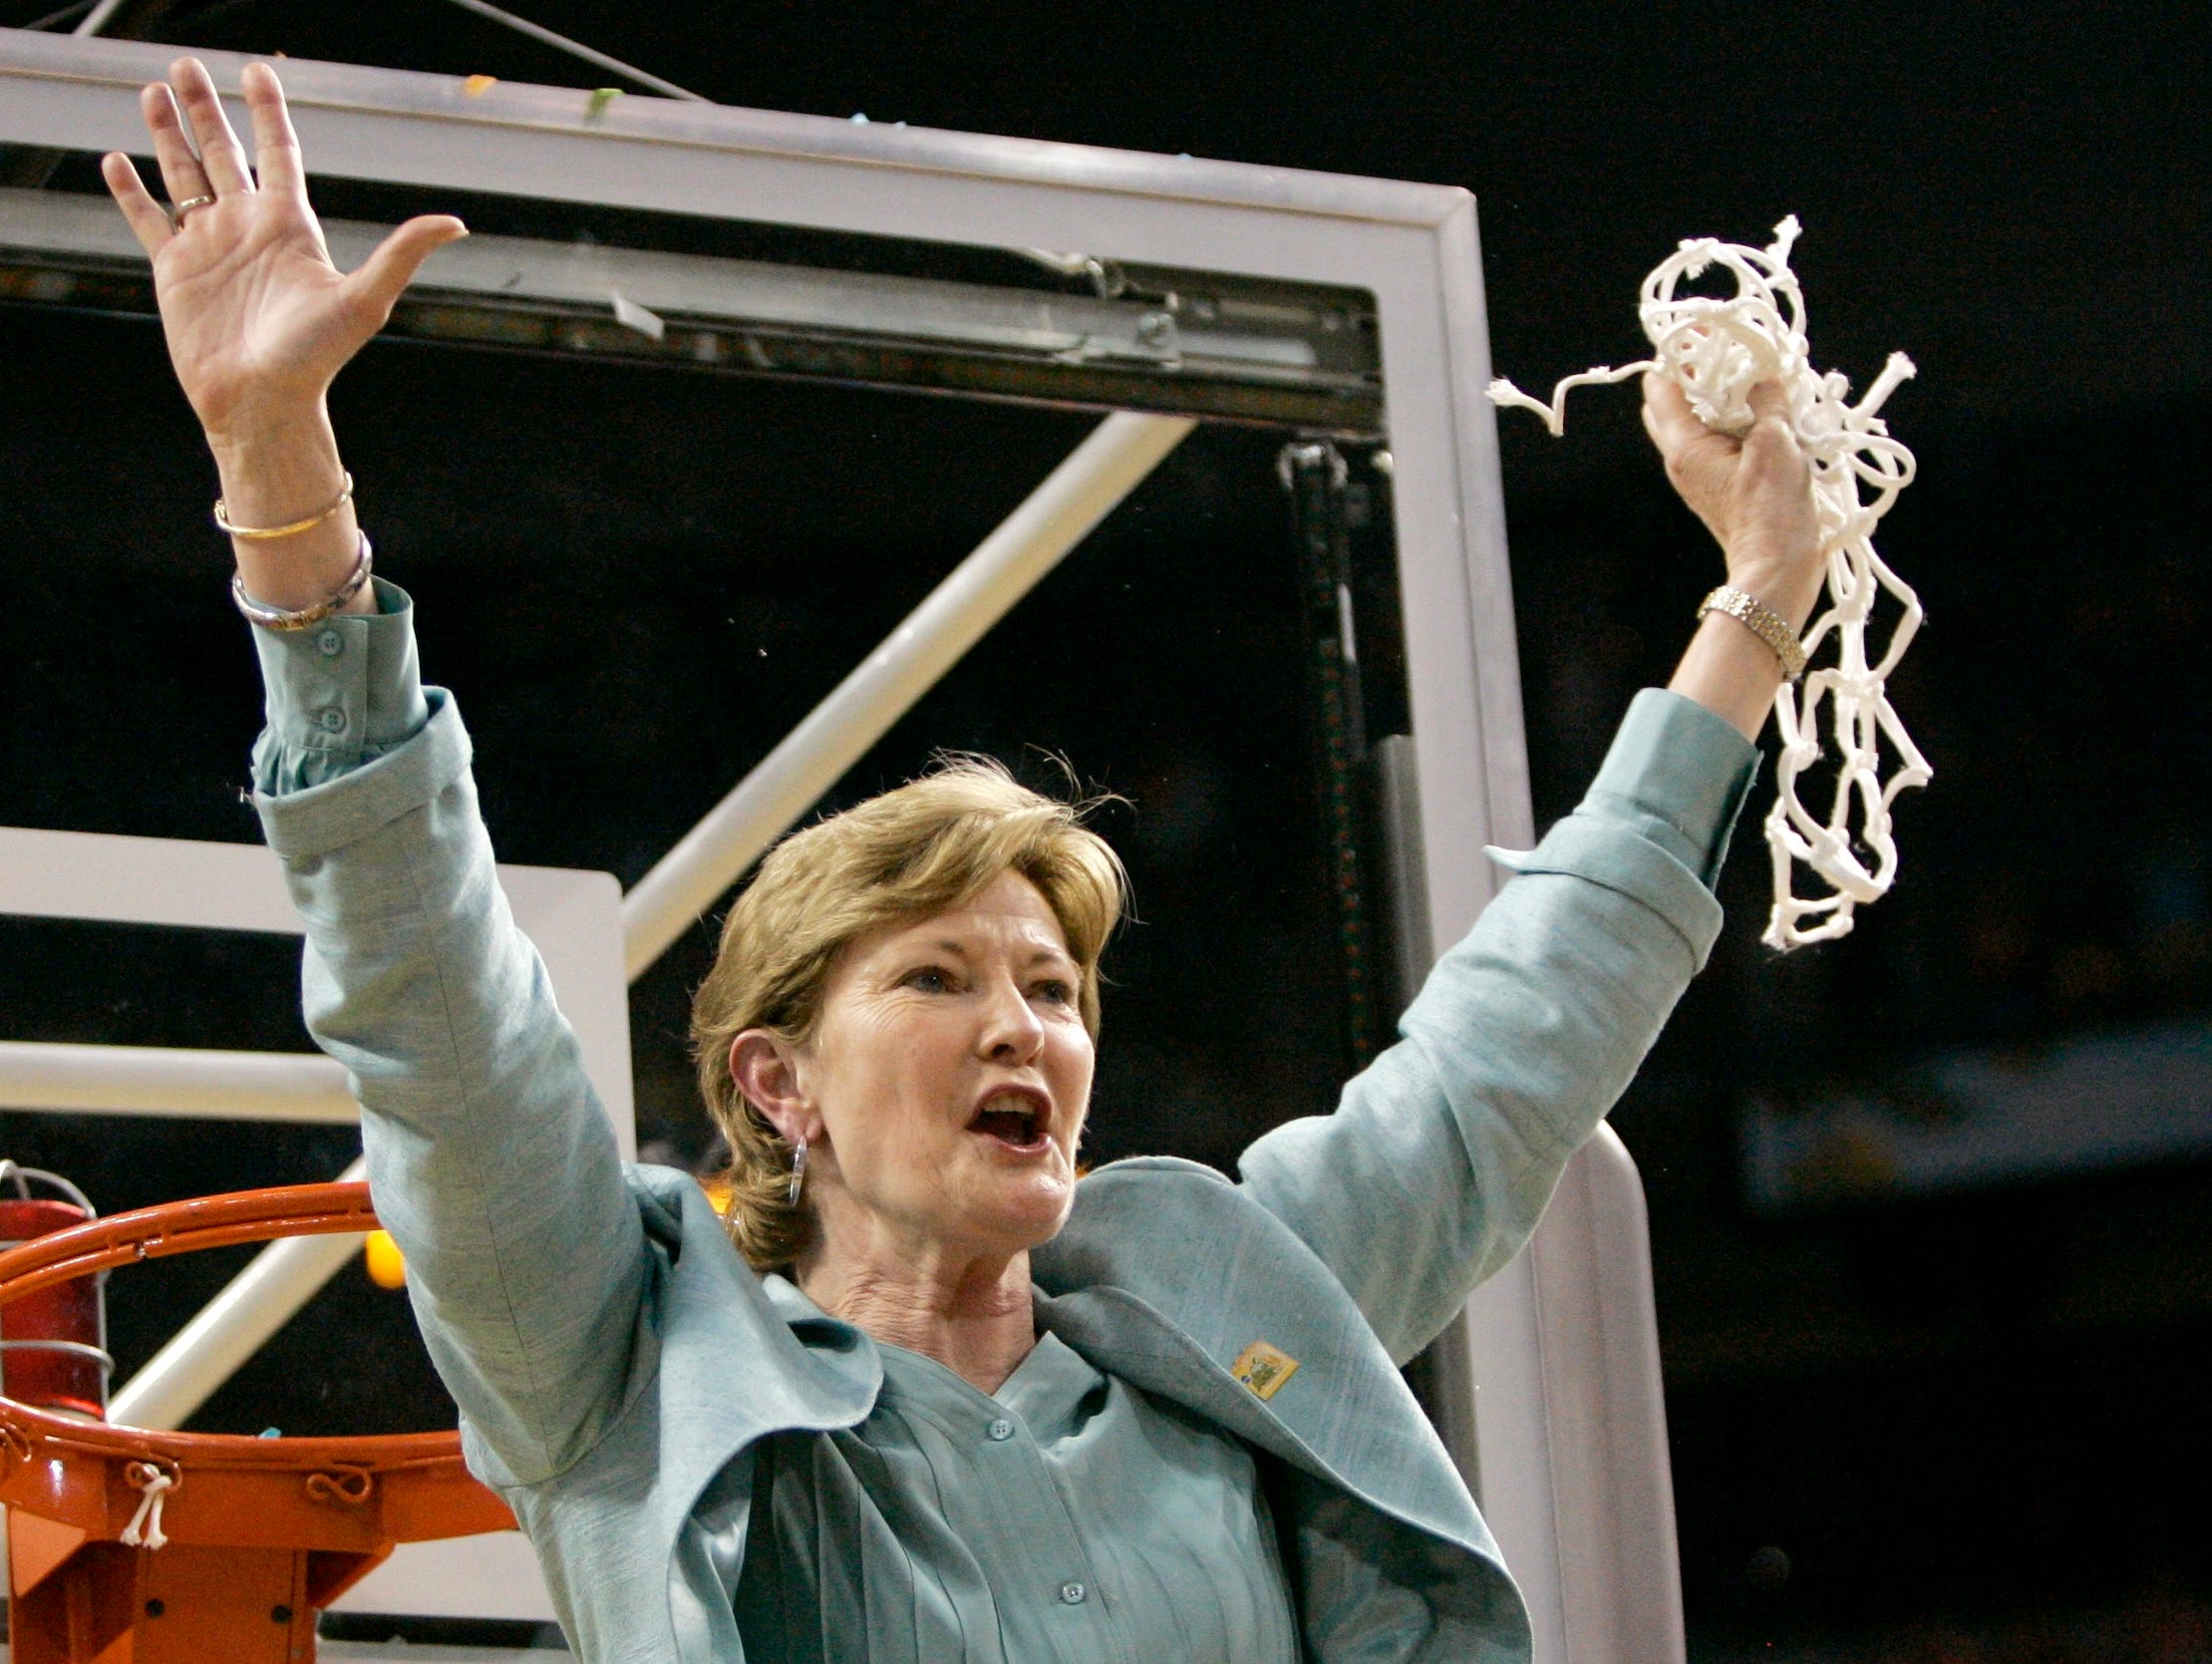 Pat Summitt holds up the net as her son, Tyler, looks on after Tennessee beat Stanford 64-48 to win its eighth national women's basketball championship, at the NCAA women's basketball championship on April 8, 2008, in Tampa, Fla.